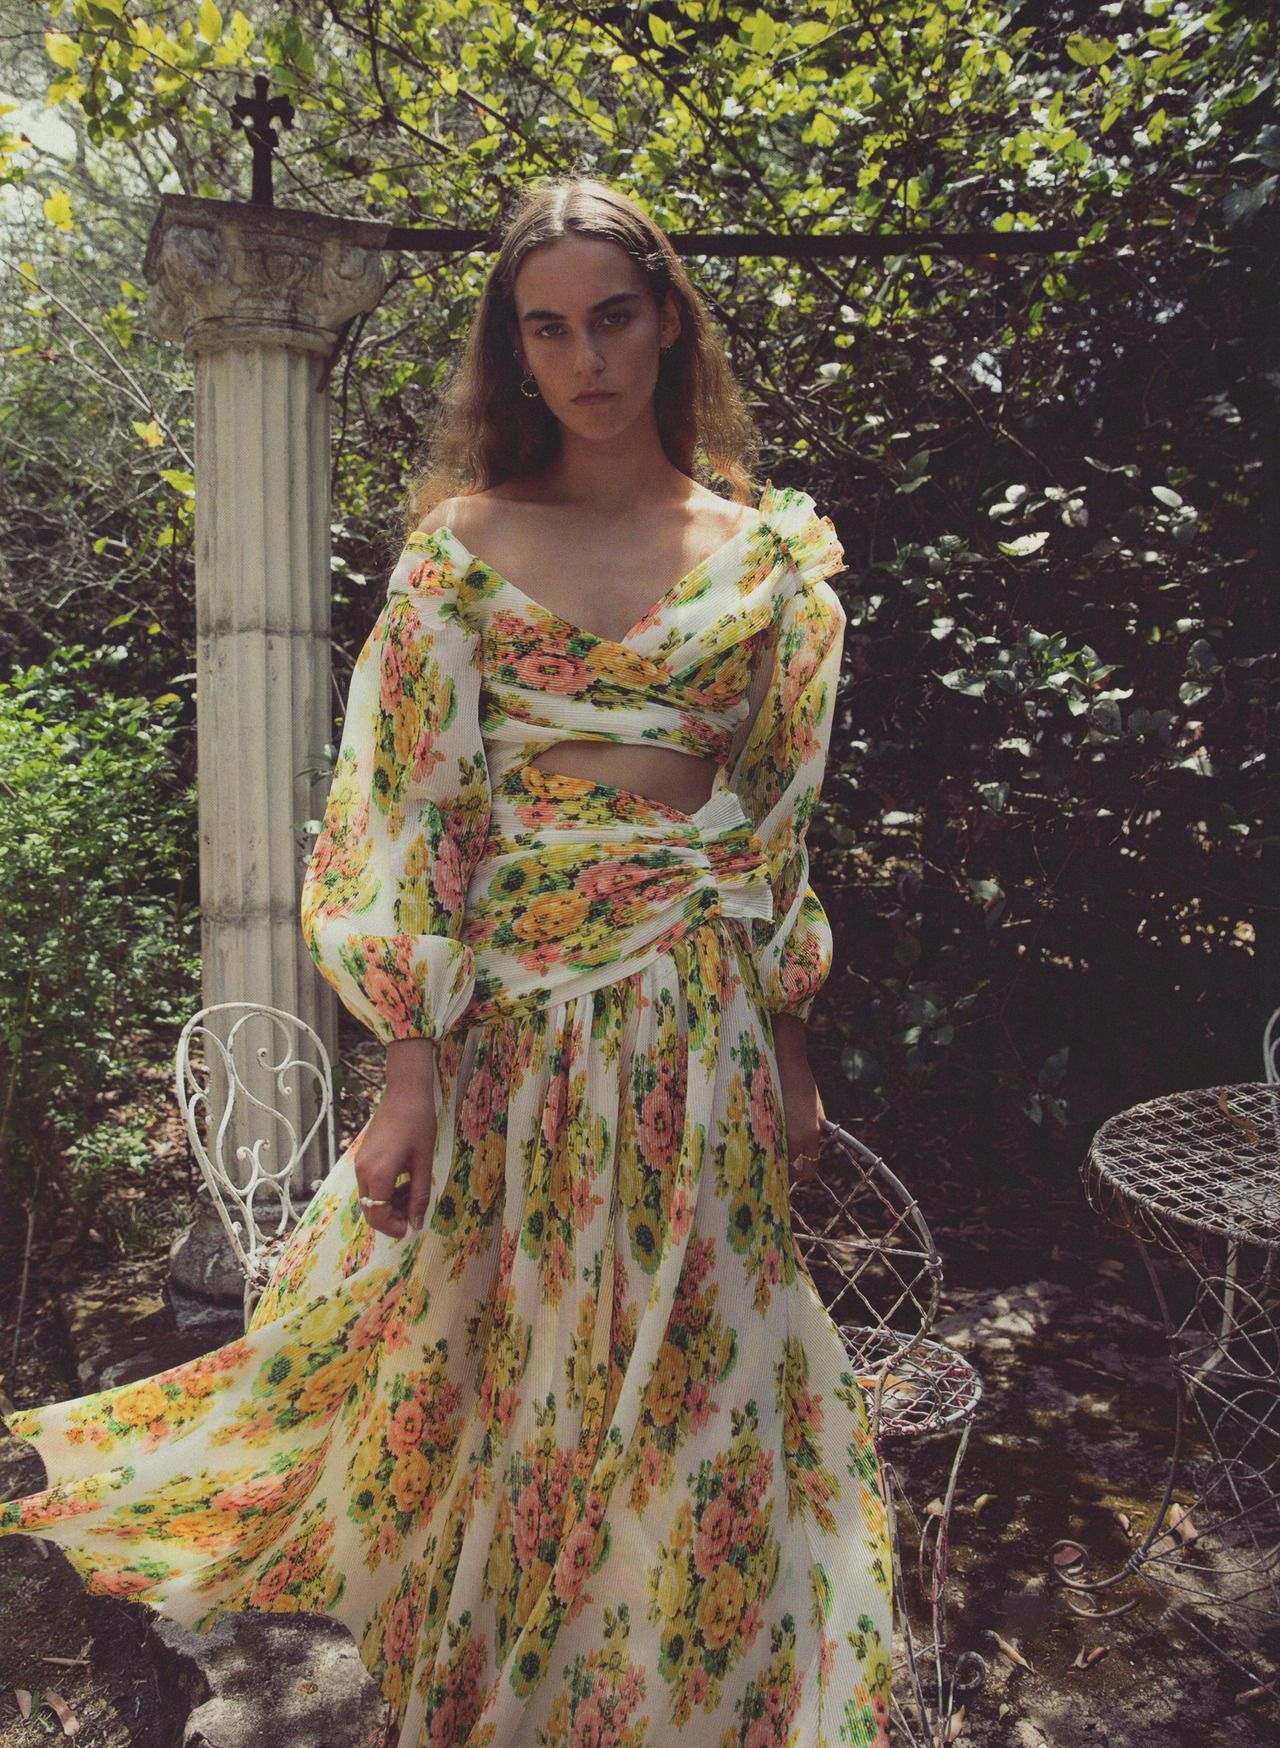 0d1c3abdf1 Editorial The Golden Surfer Midi Dress from our Spring 18 Ready-to-Wear  Collection features in the current issue of ELLE Australia.